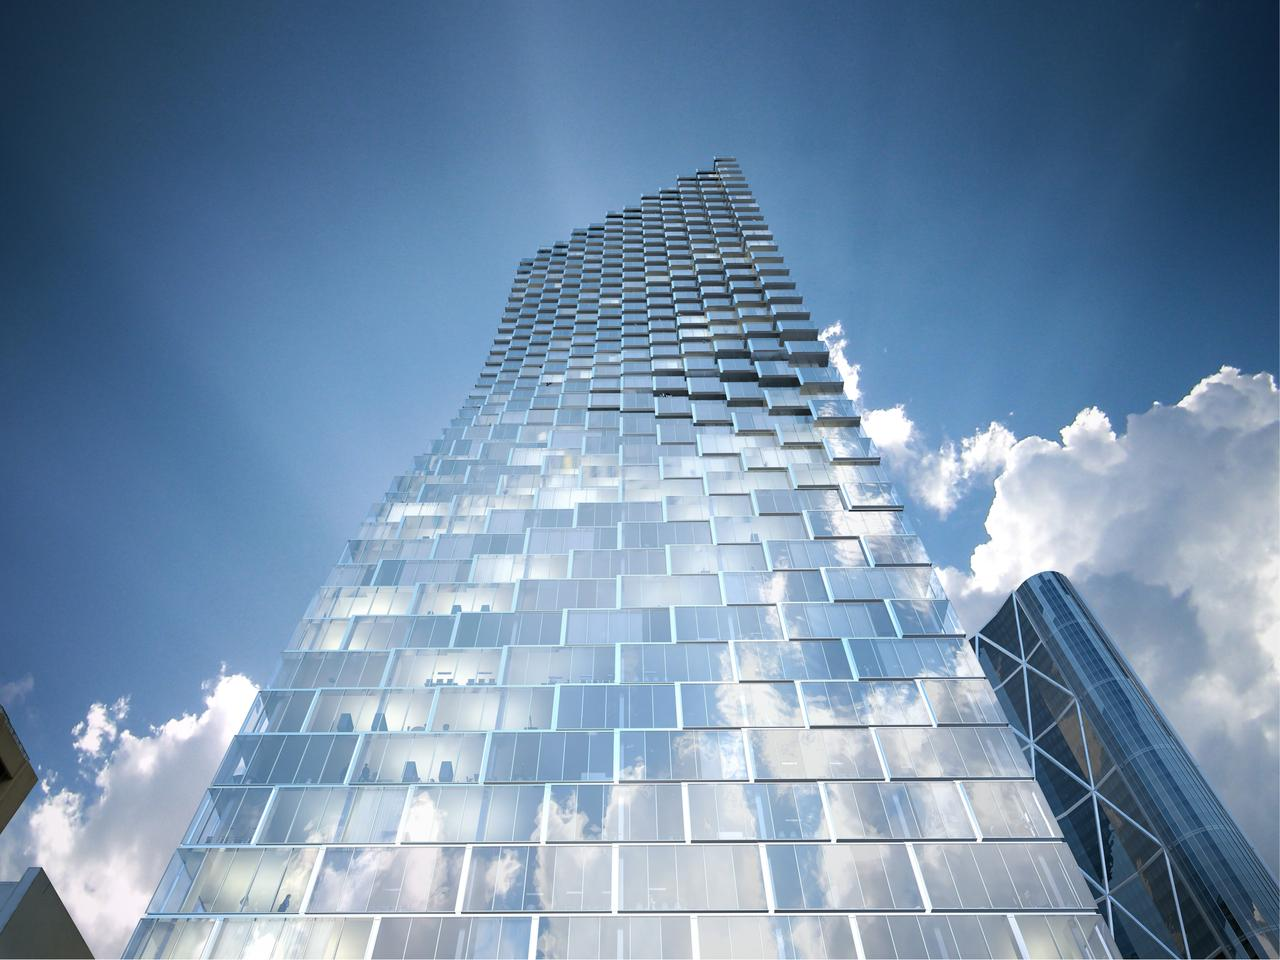 Telus Sky Tower will feature a mixture of residential, office, and retail spaces (Image: BIG)